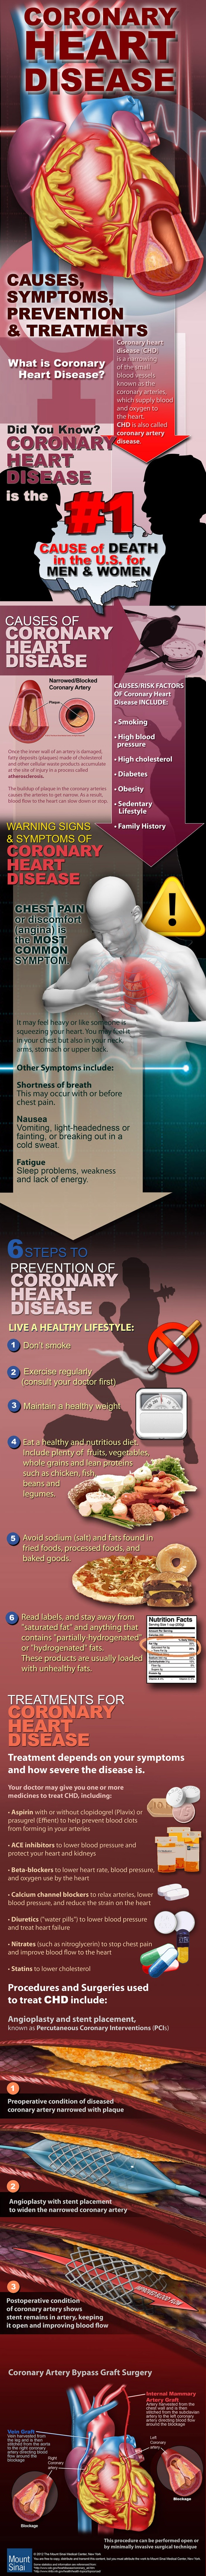 Facts about Coronary Heart Disease